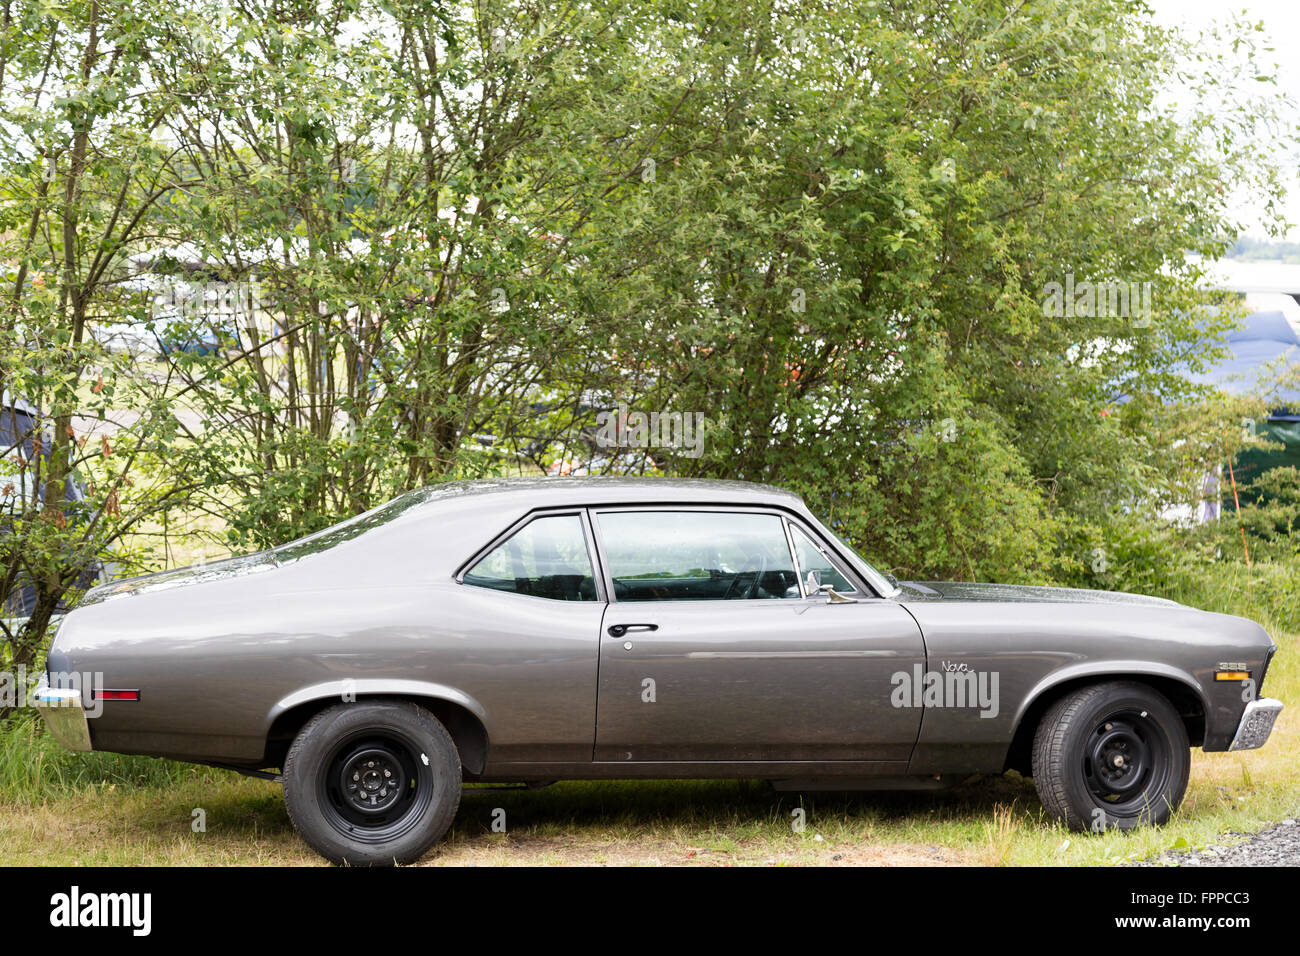 Us Vintage Car Side View Stock Photo 100066963 Alamy